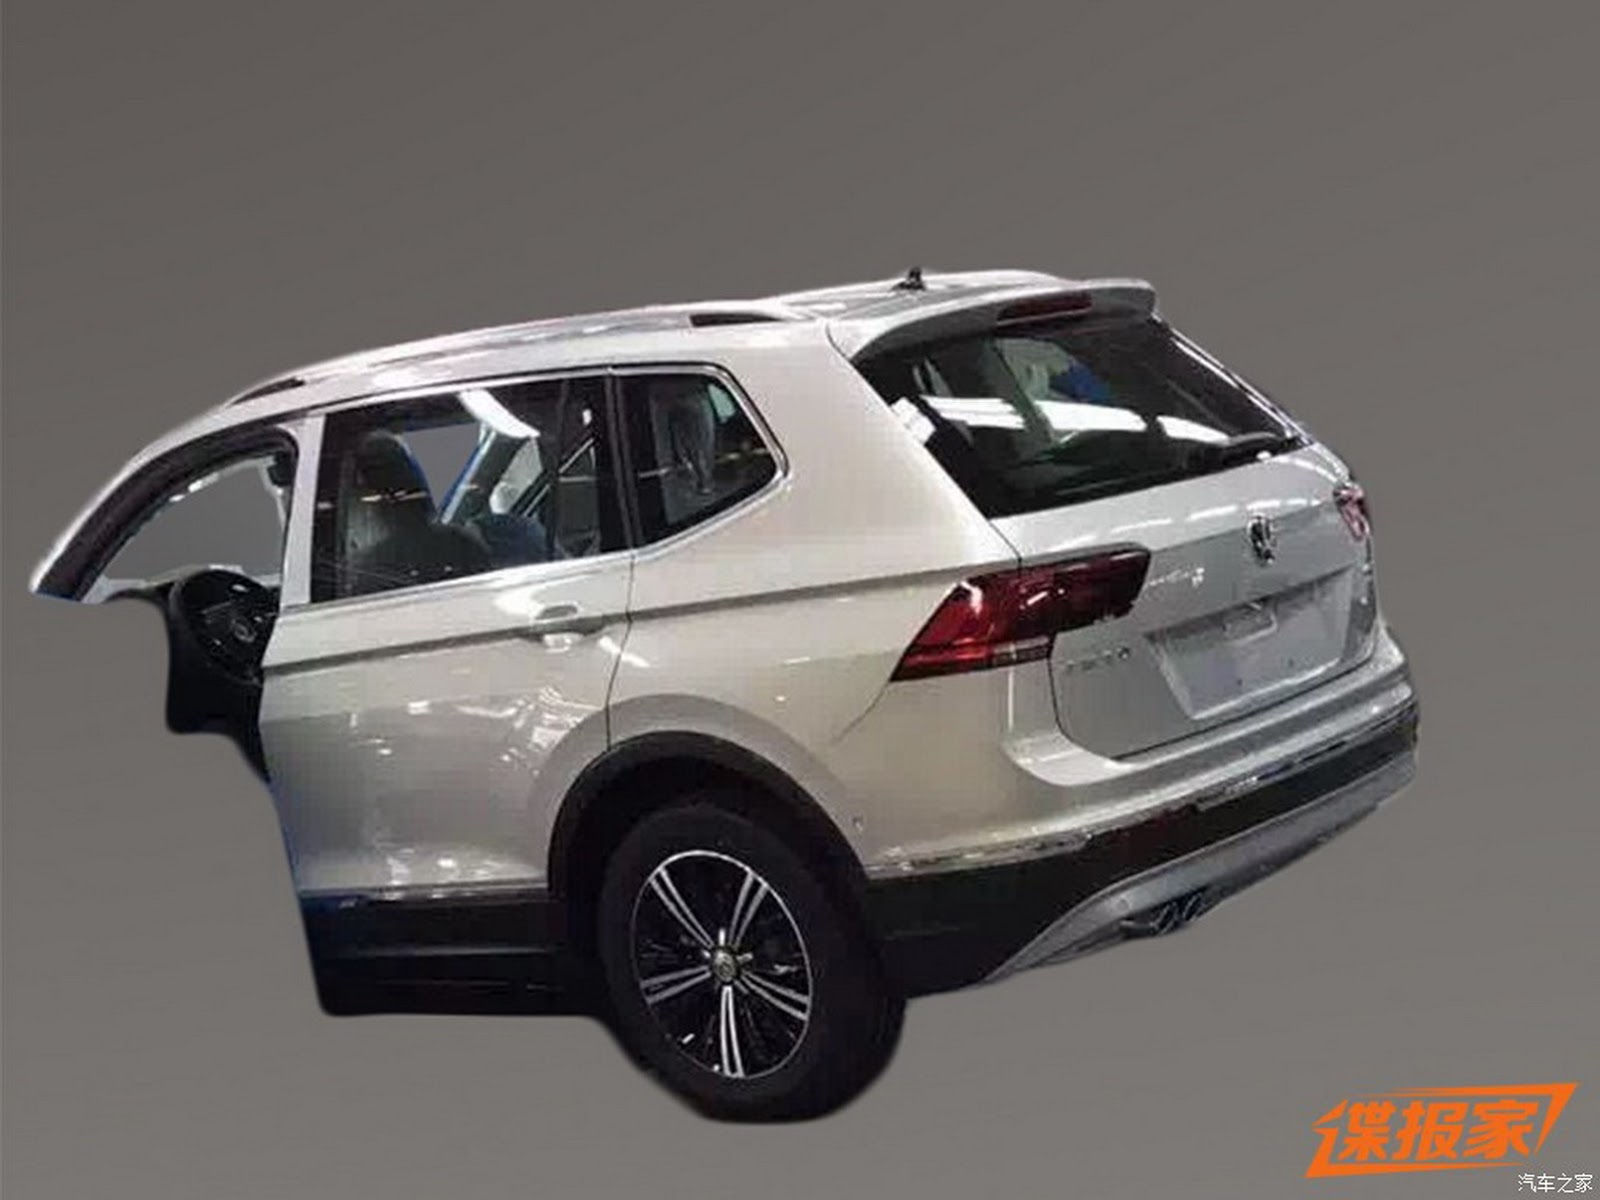 VW Tiguan XL rear three quarter spied undisguised in China